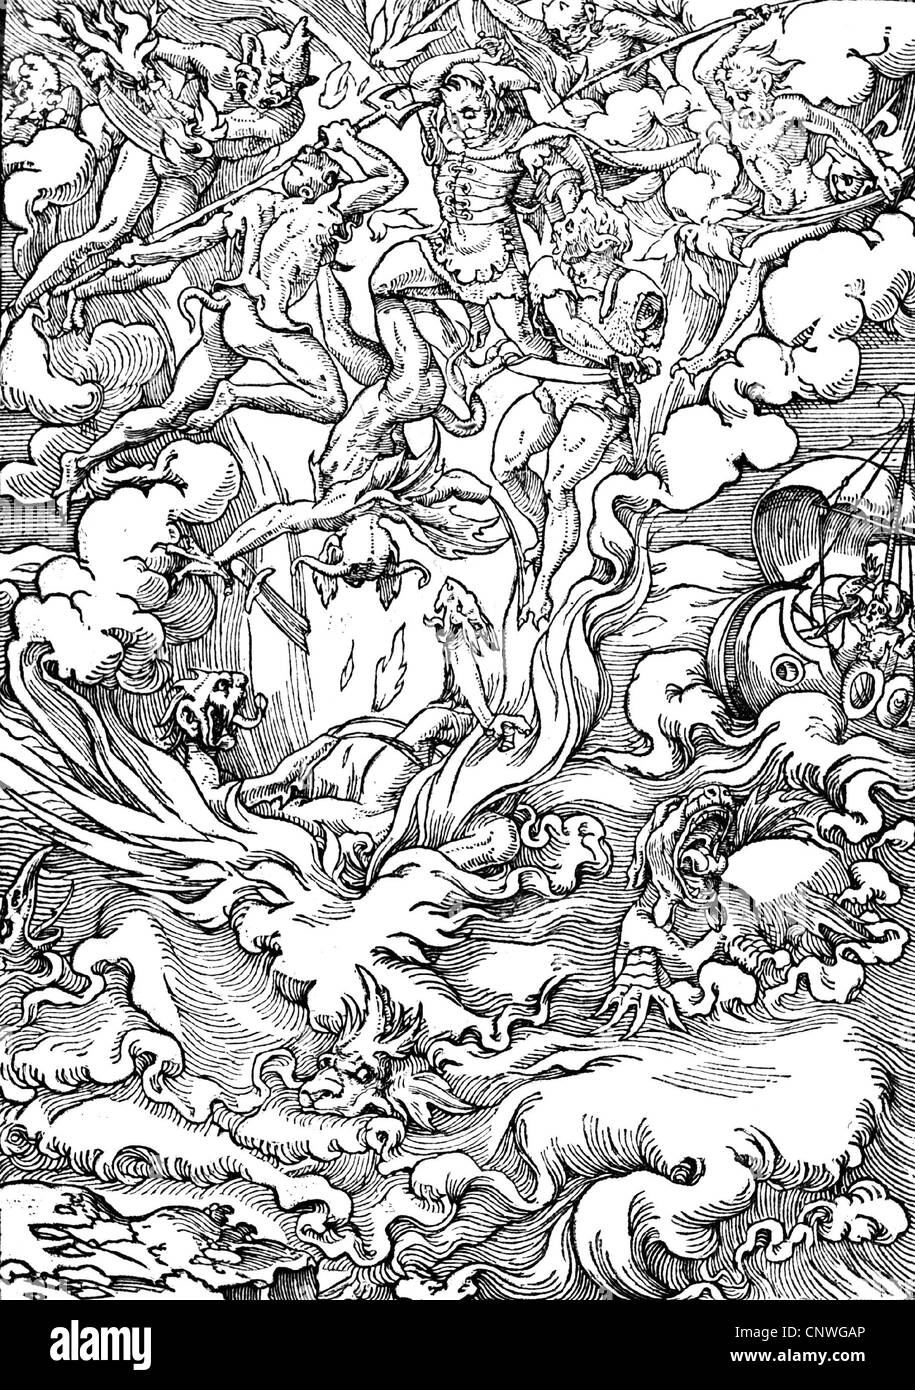 religion, apocalypse, Last Judgement, woodcut by Jean Cousin, from the novel by Gerard d'Euphrate, Paris, 1549, - Stock Image